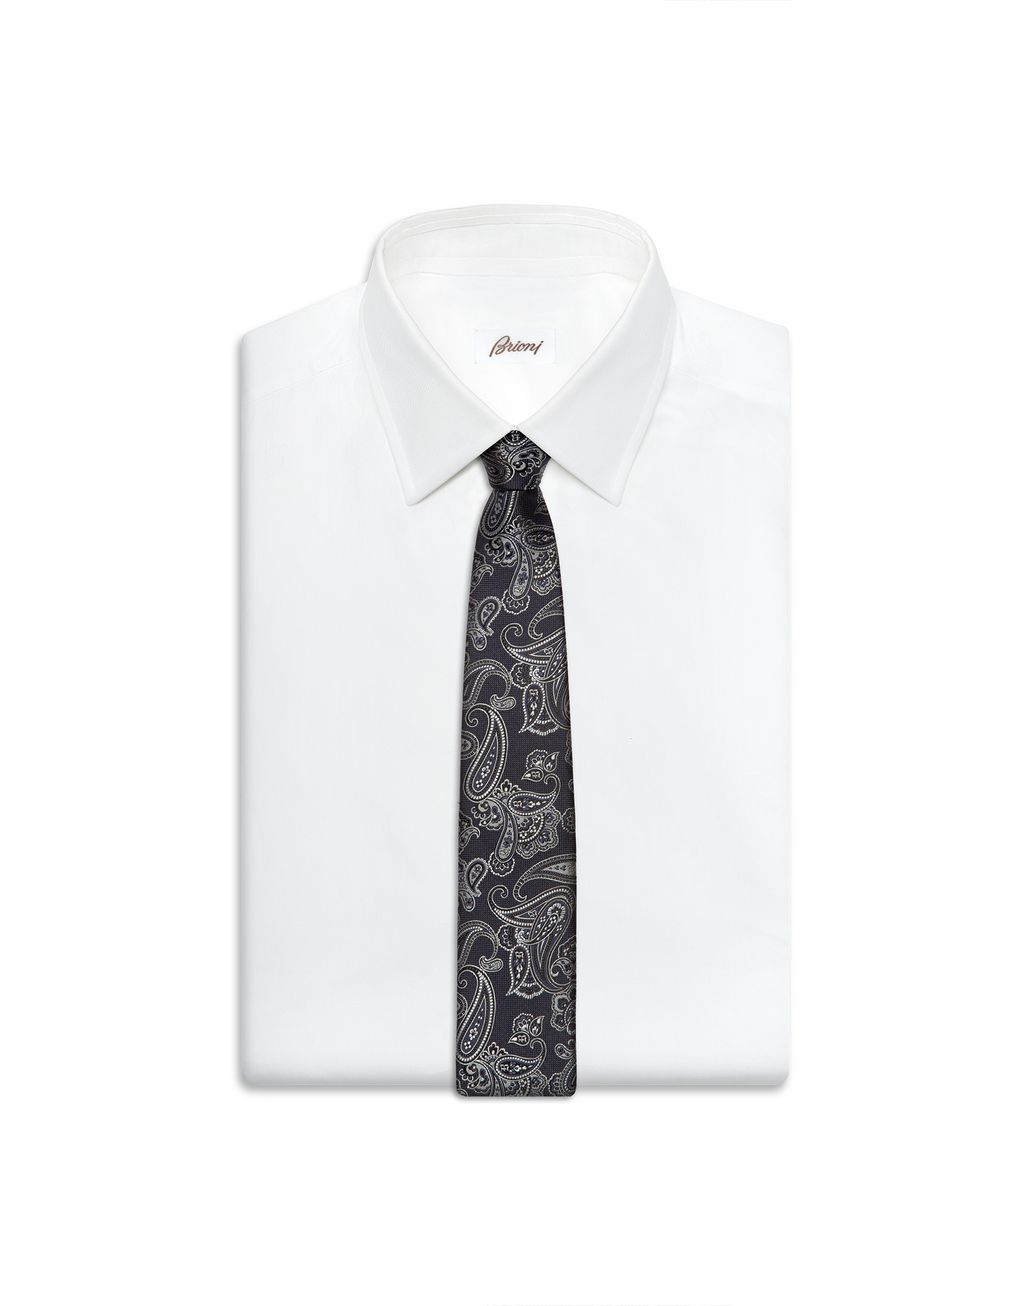 b52a21235c28 Brioni Men's Tie & Pocket Square | Brioni Official Online Store